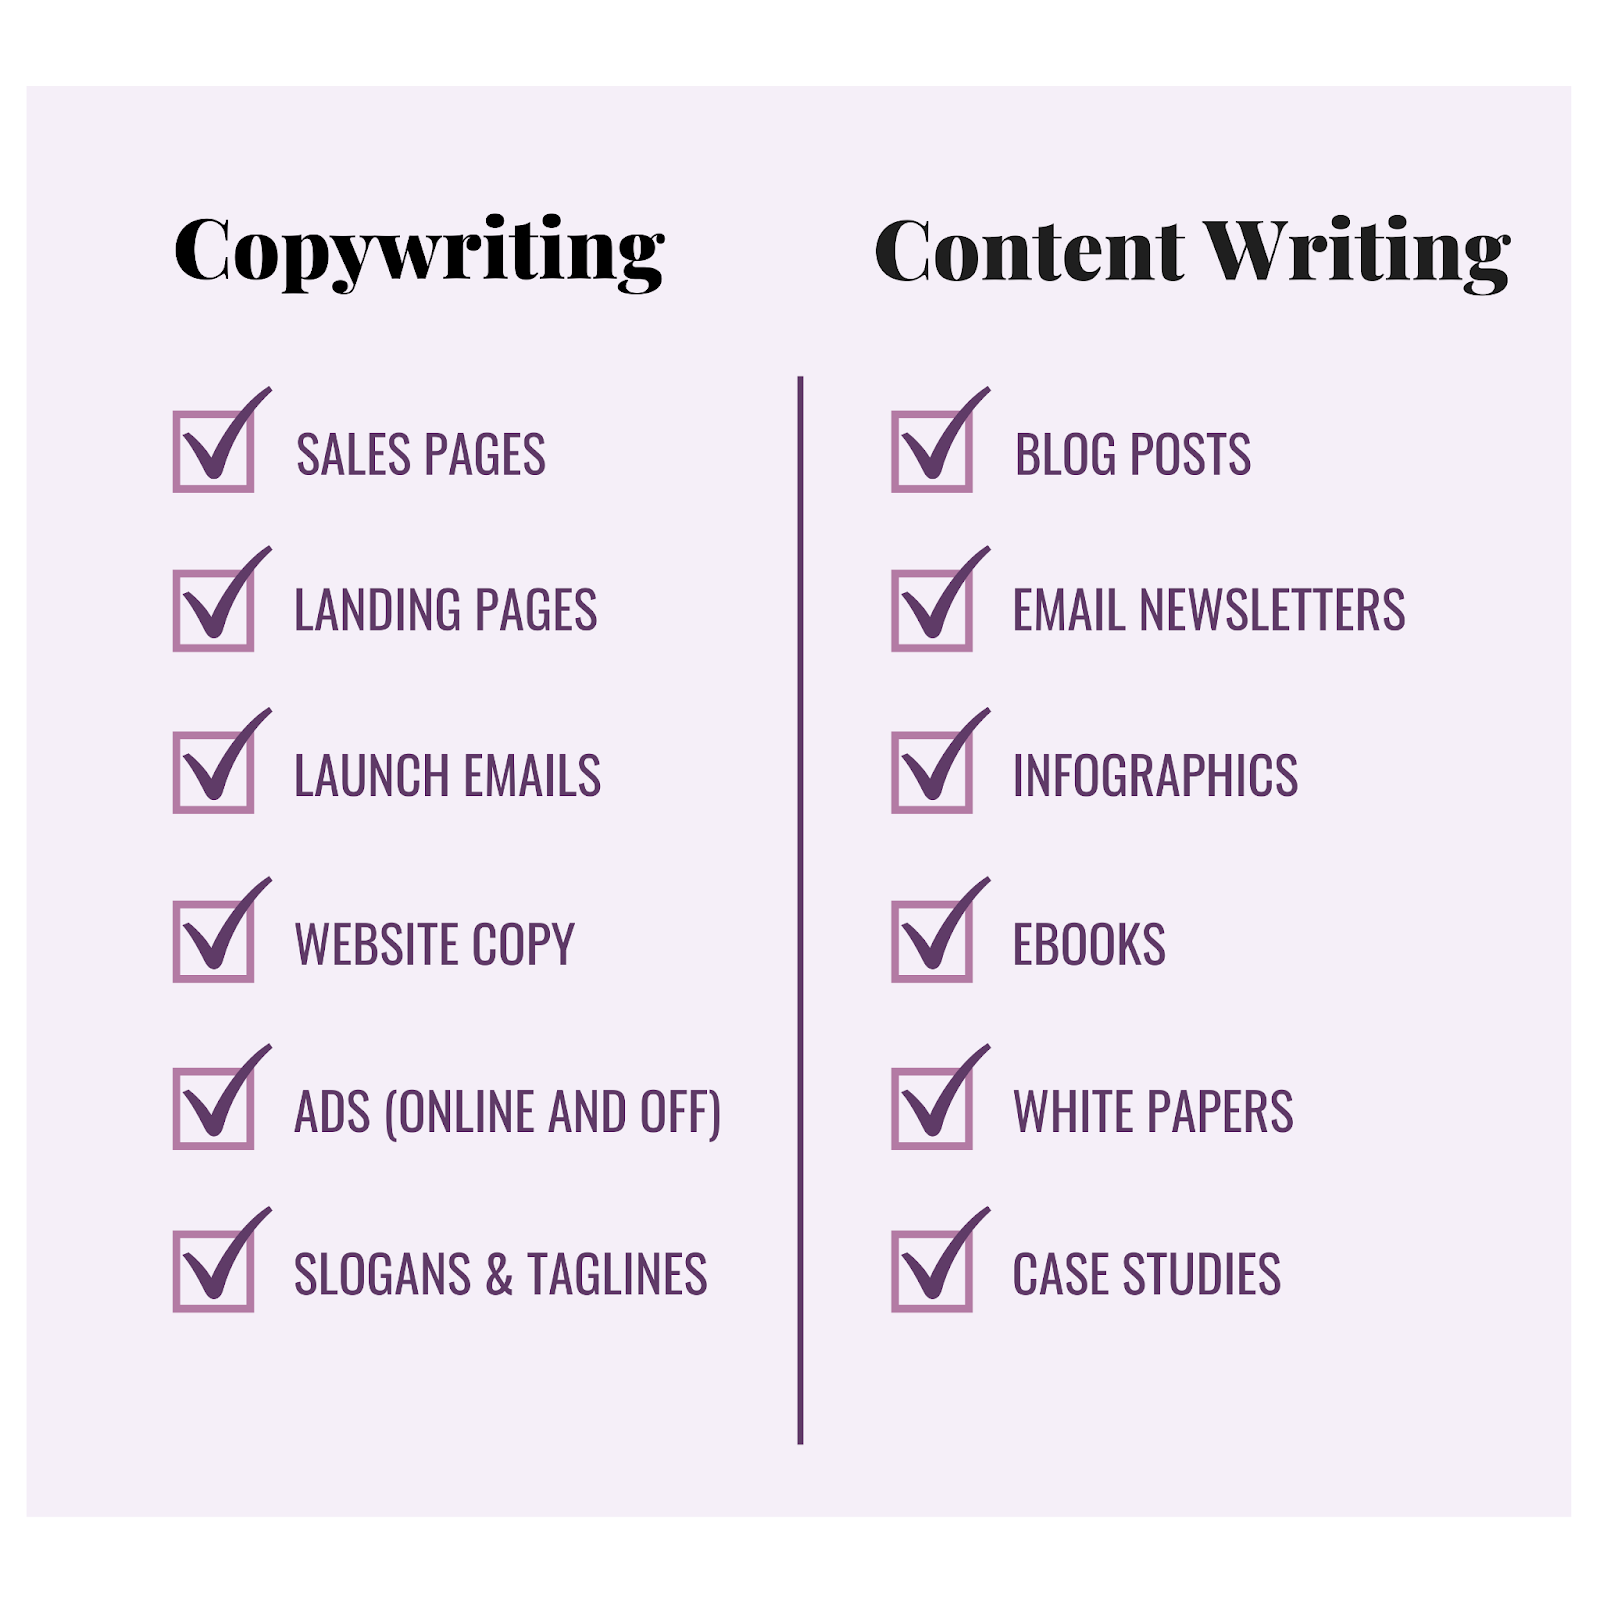 Difference Between Copywriting and Content Writing